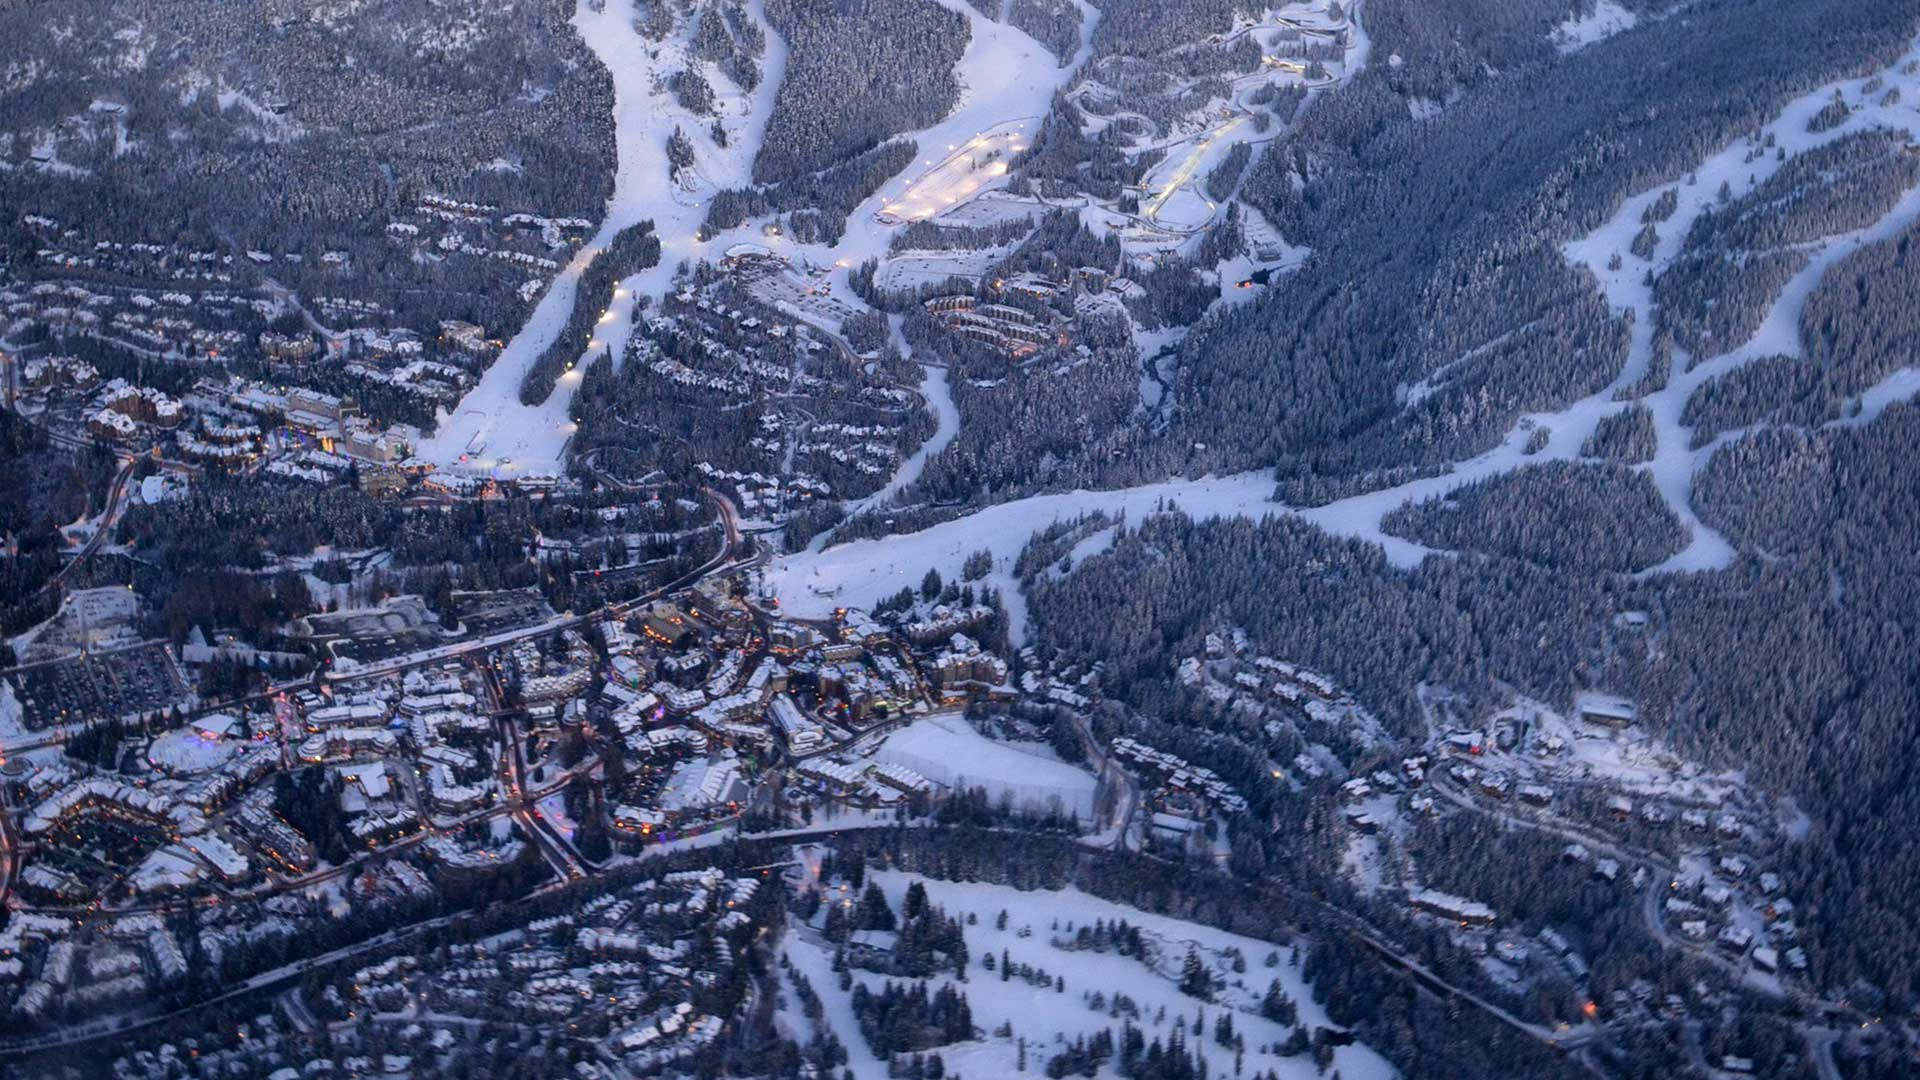 Aerial view of Whistler Village from a helicopter